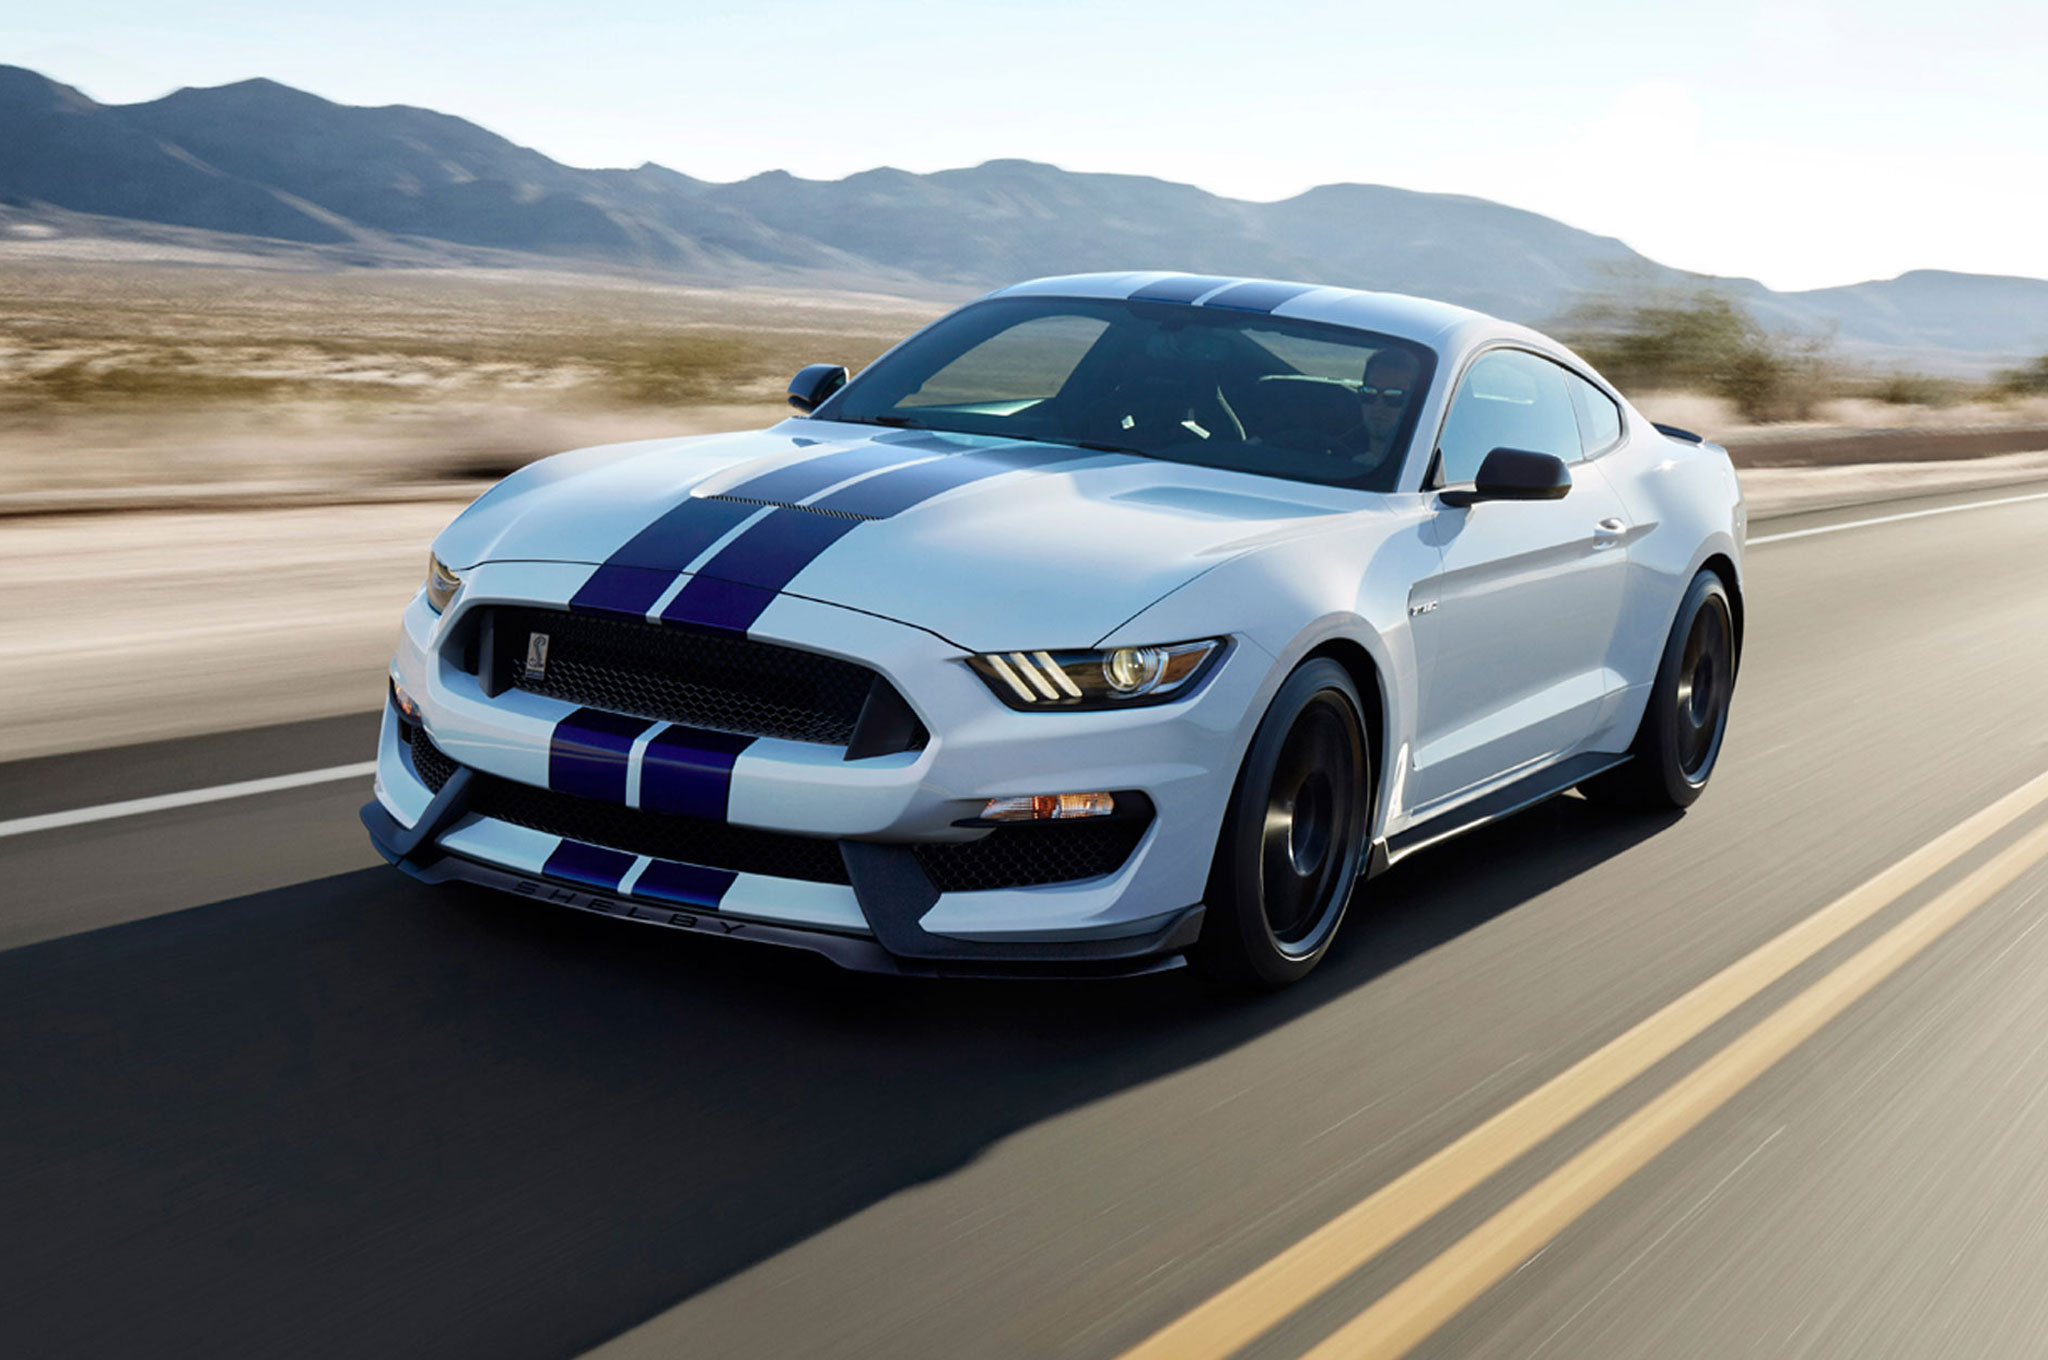 2016 Ford Shelby GT350 Mustang Review